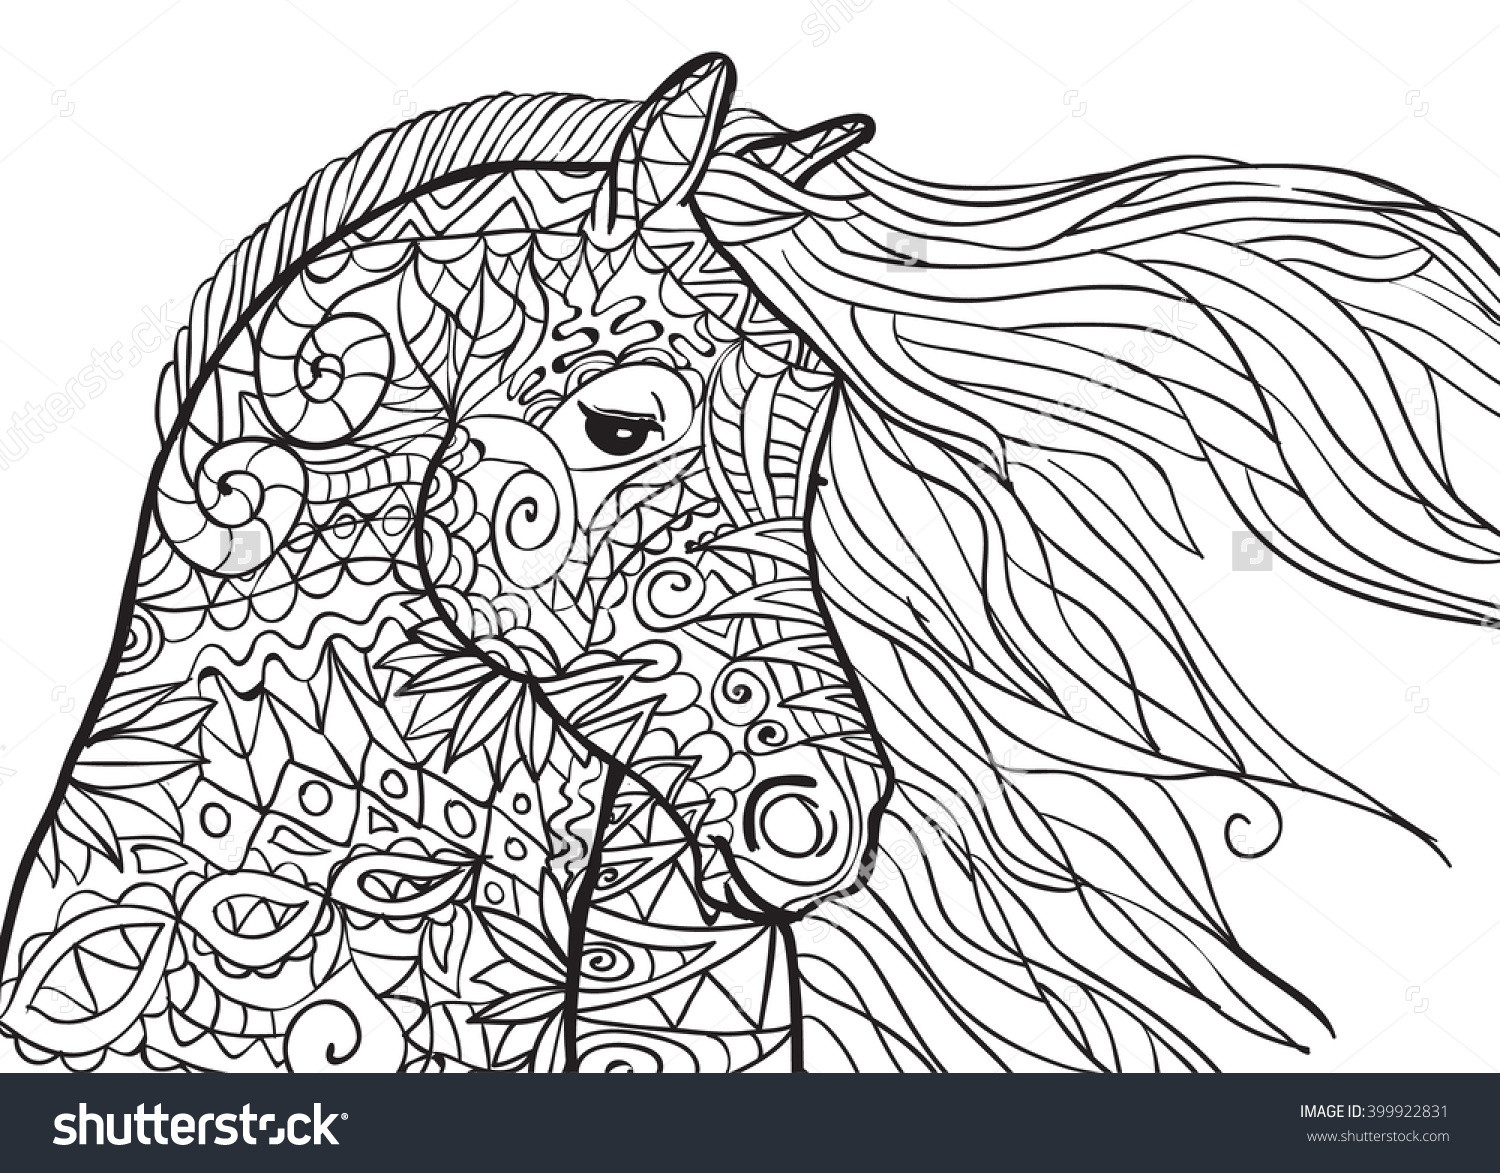 Adult Coloring Book Horse  Adult Horse Coloring Pages